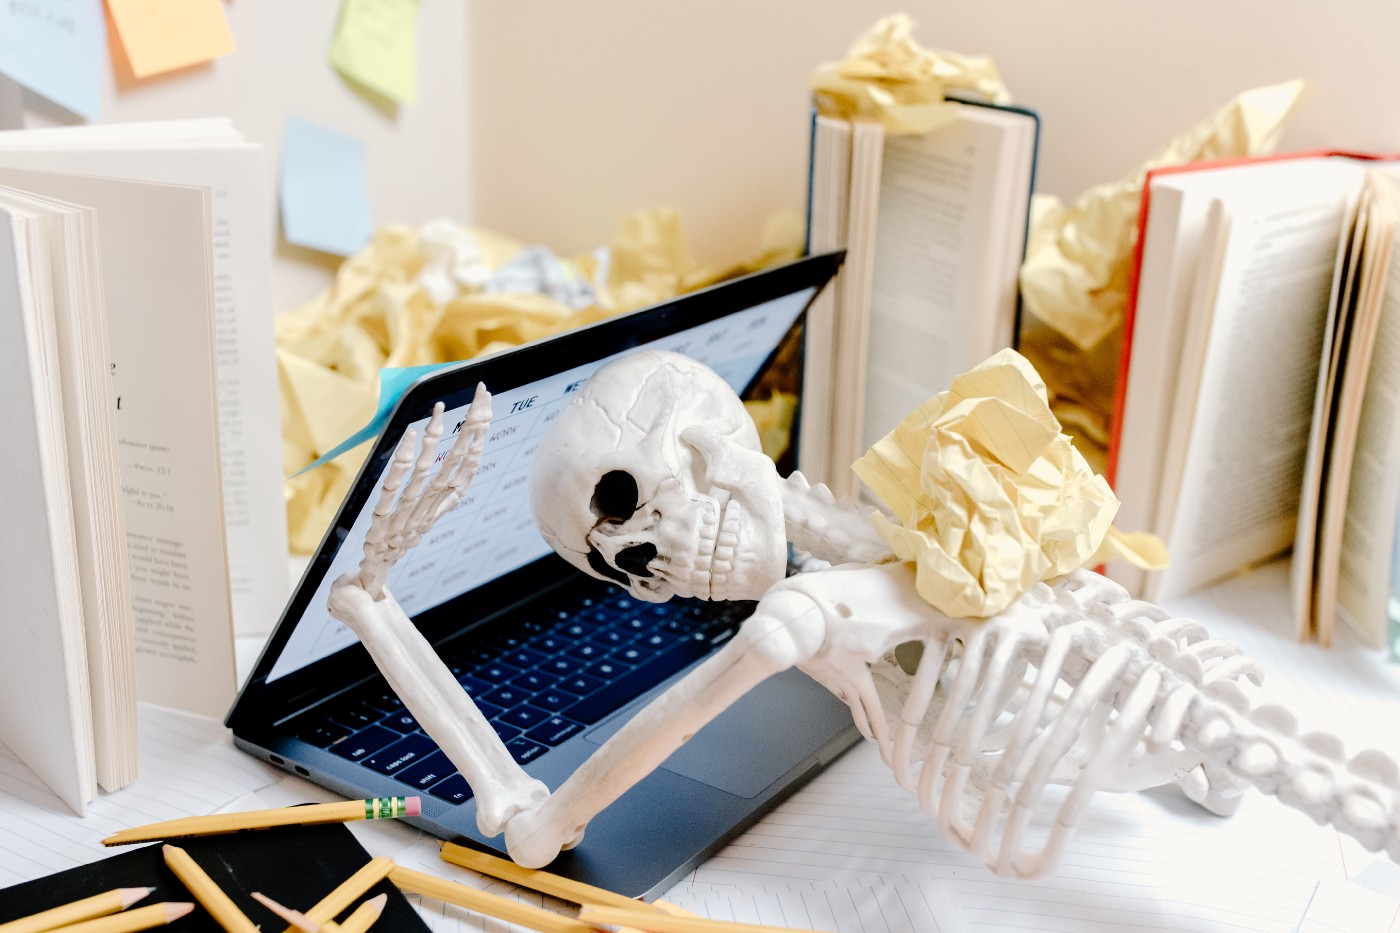 Skeleton and computer.